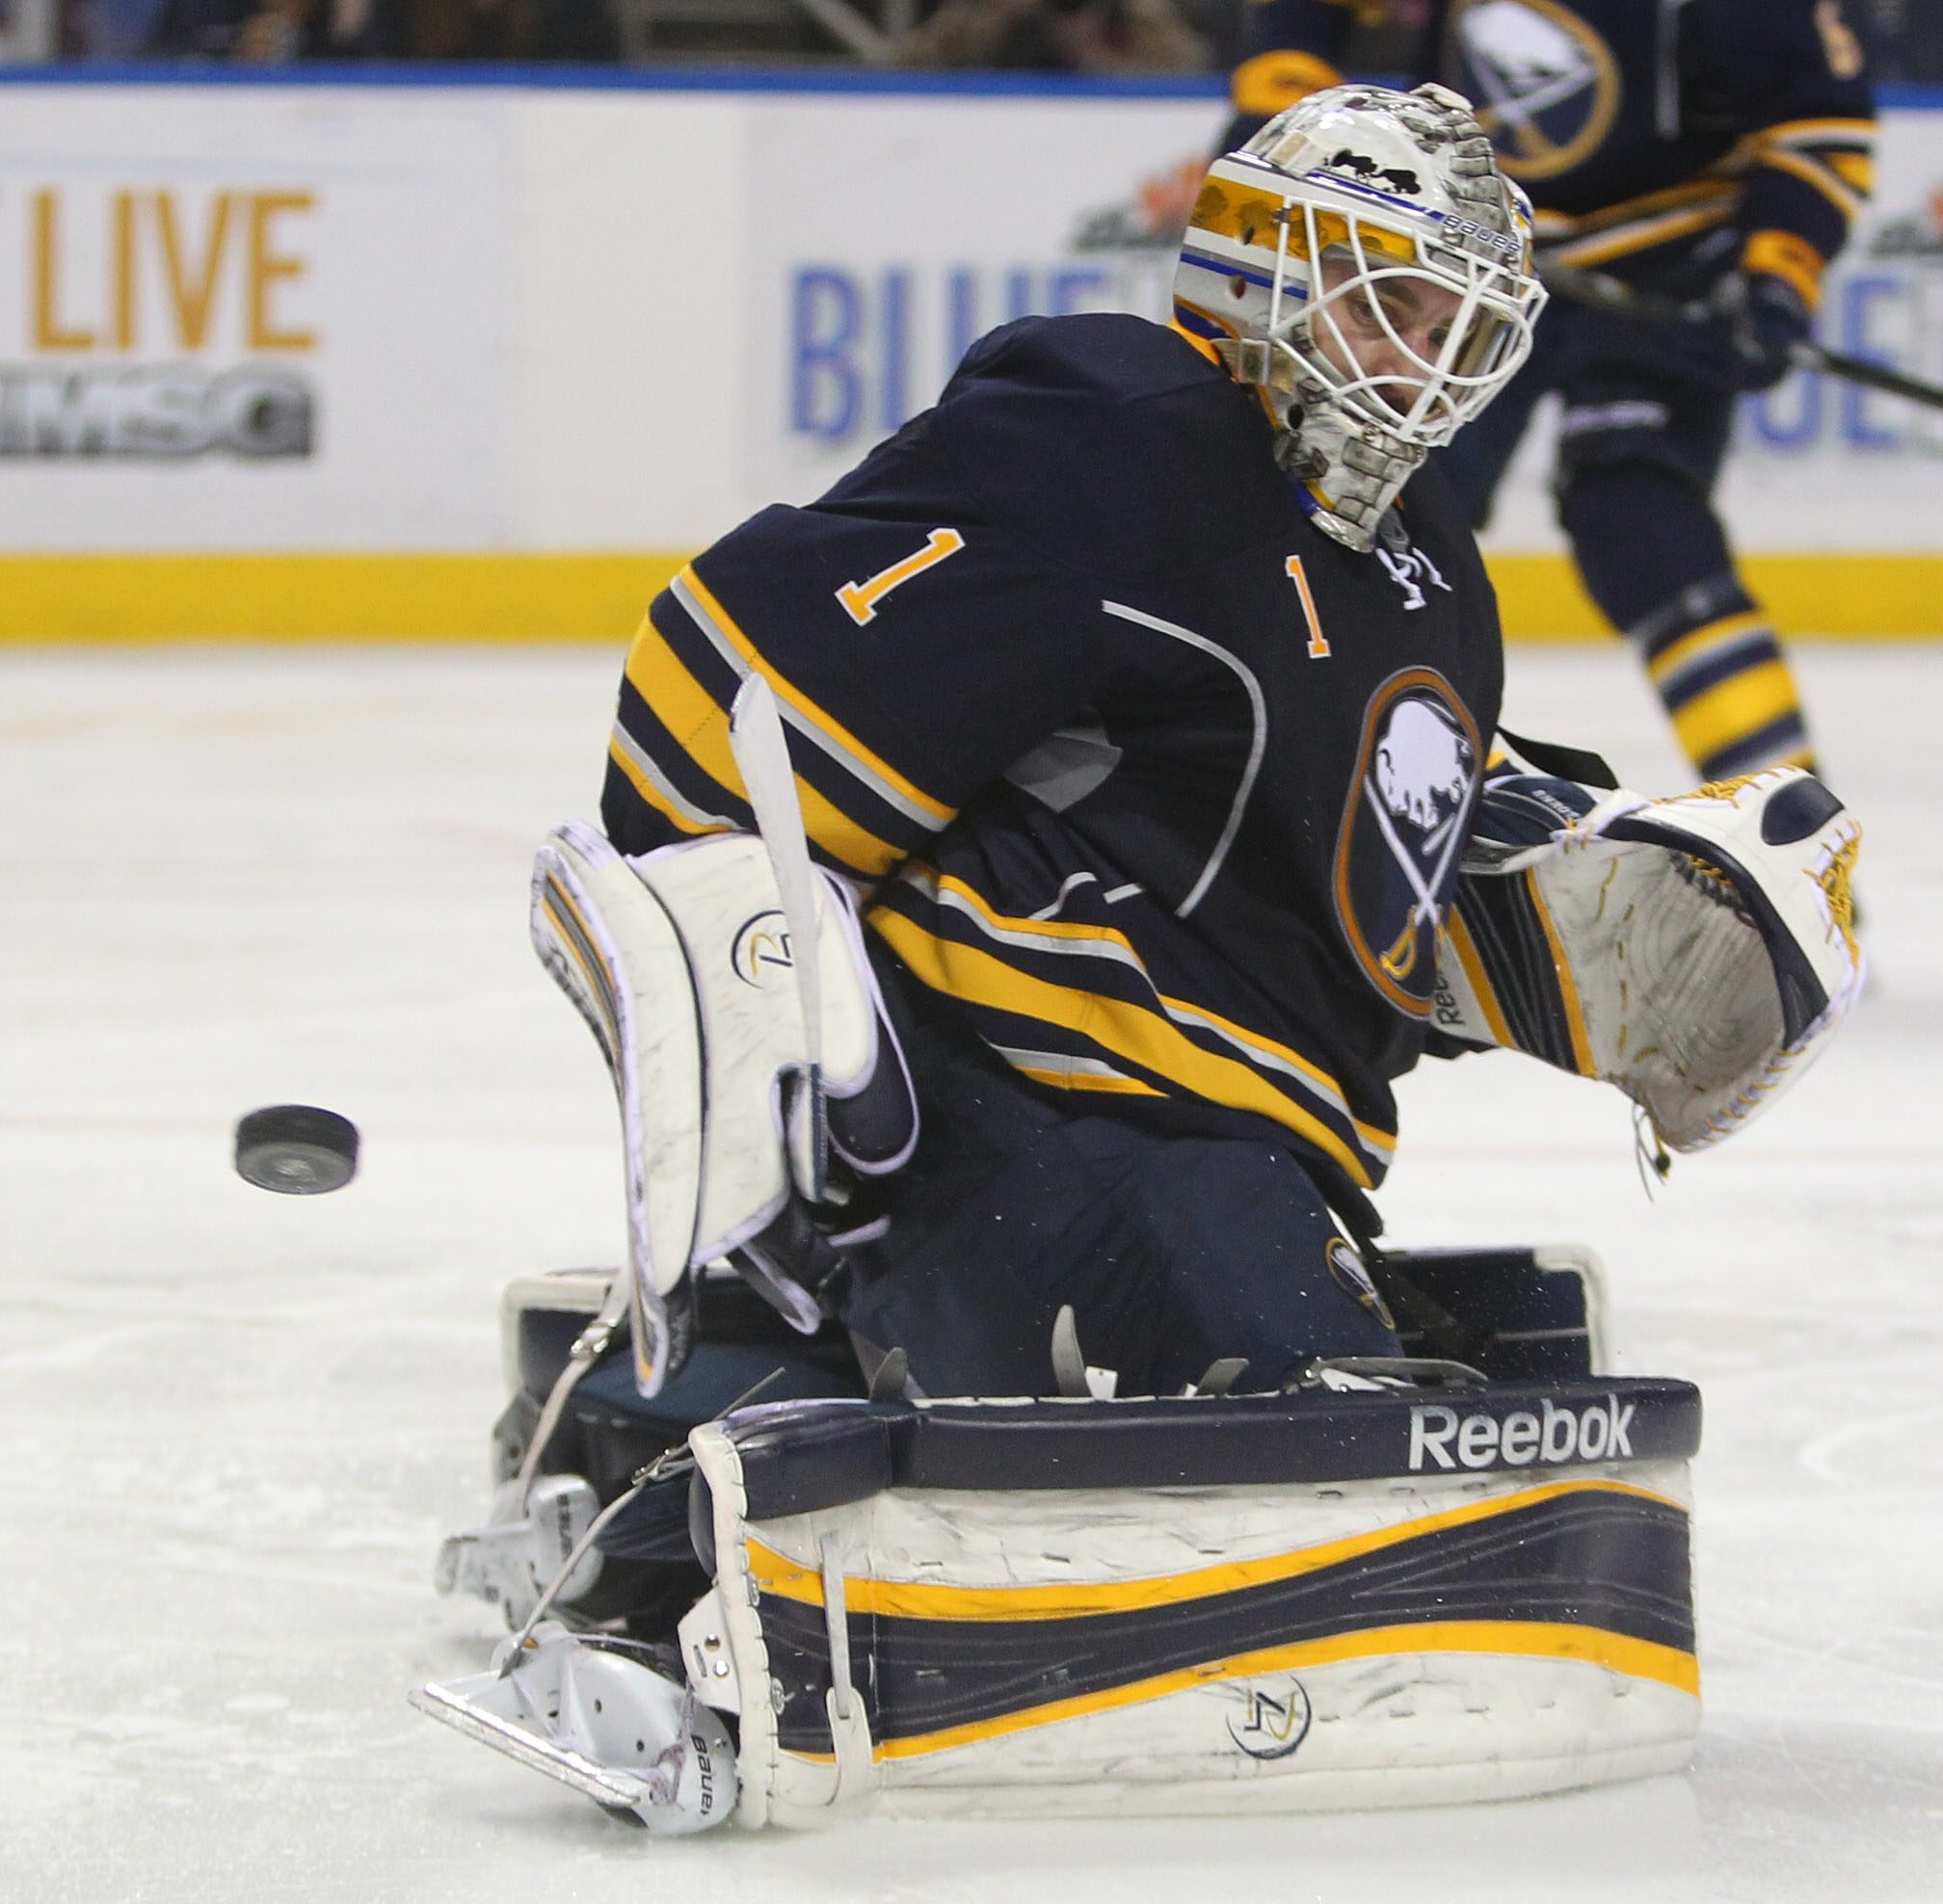 Jhonas Enroth makes one of his 29 saves during the Sabres' 1-0 triumph over the Philadelphia Flyers. (Mark Mulville/Buffalo News)